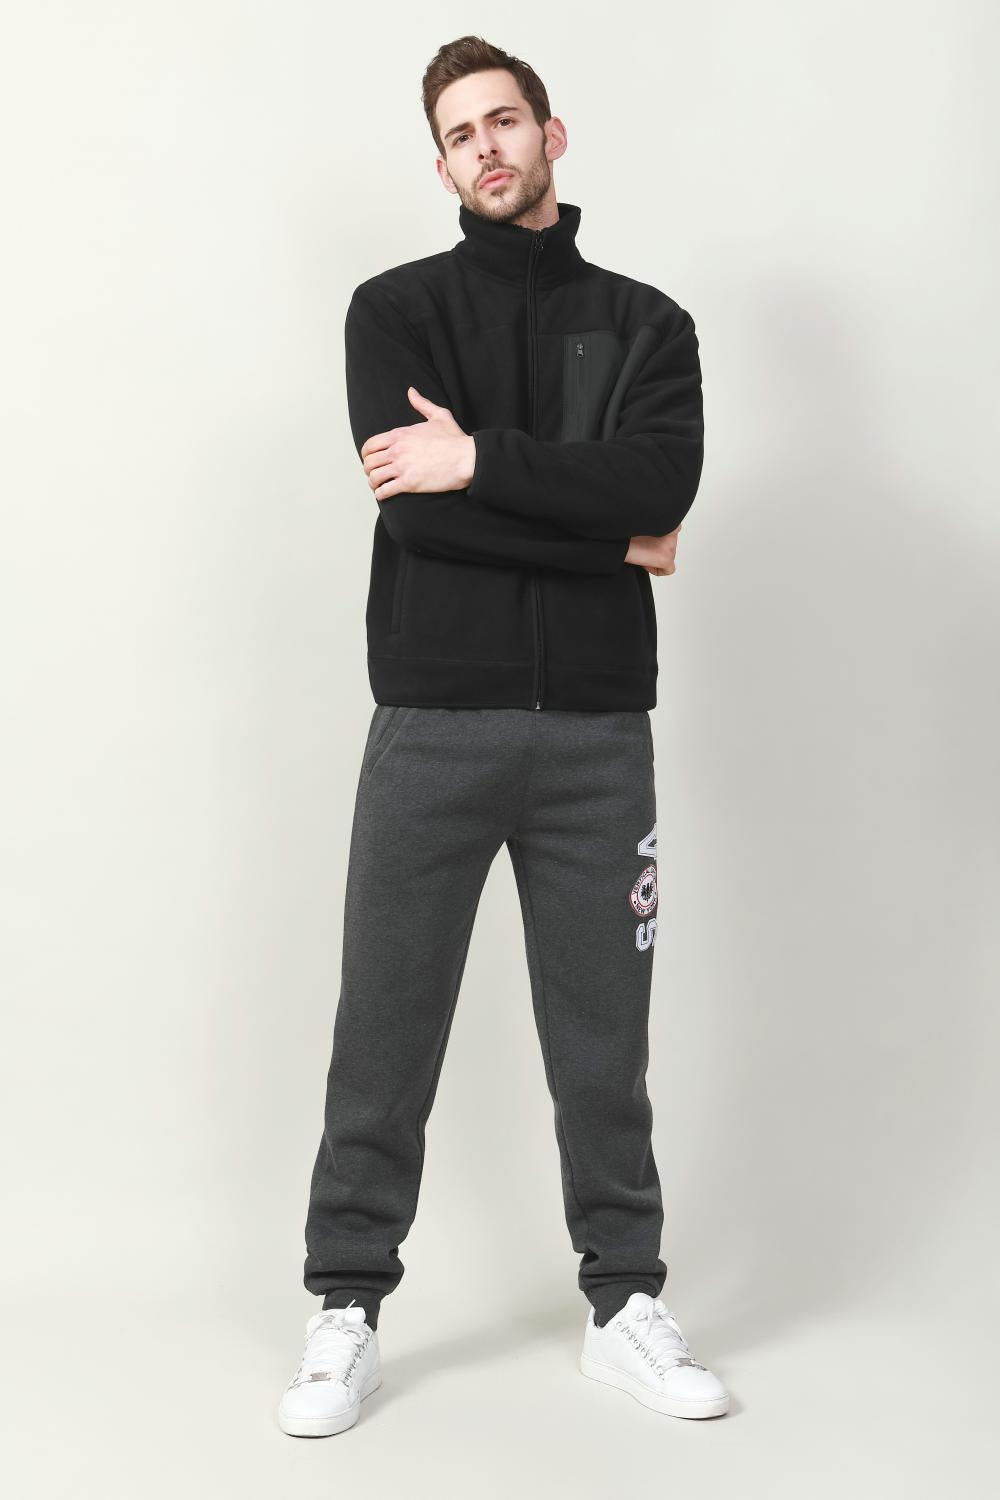 Men's knit soft warm pants